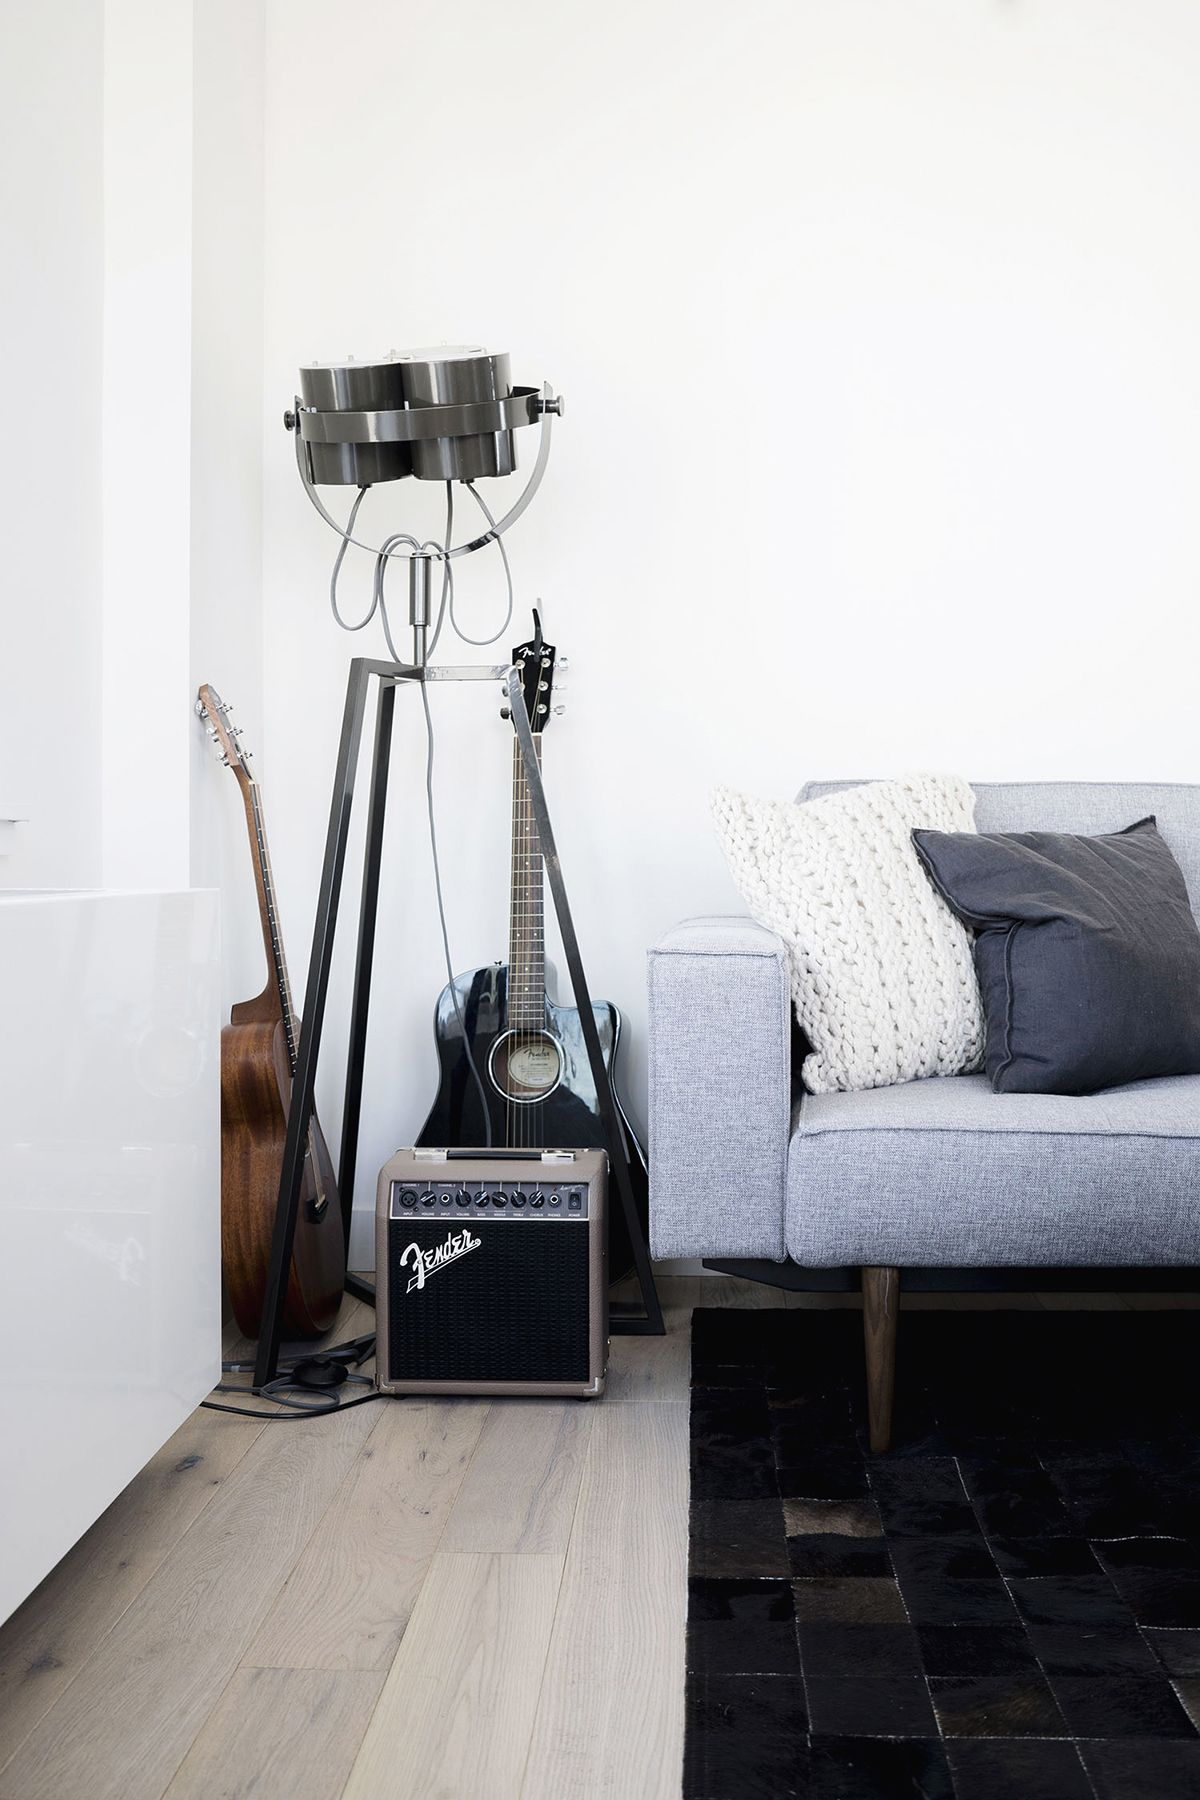 Grey Sofa Studio Floor Lamp Guitar Scandinavian Industrial Living Room In New York Floor Lamp Bedroom Living Room Scandinavian Floor Lamps Living Room